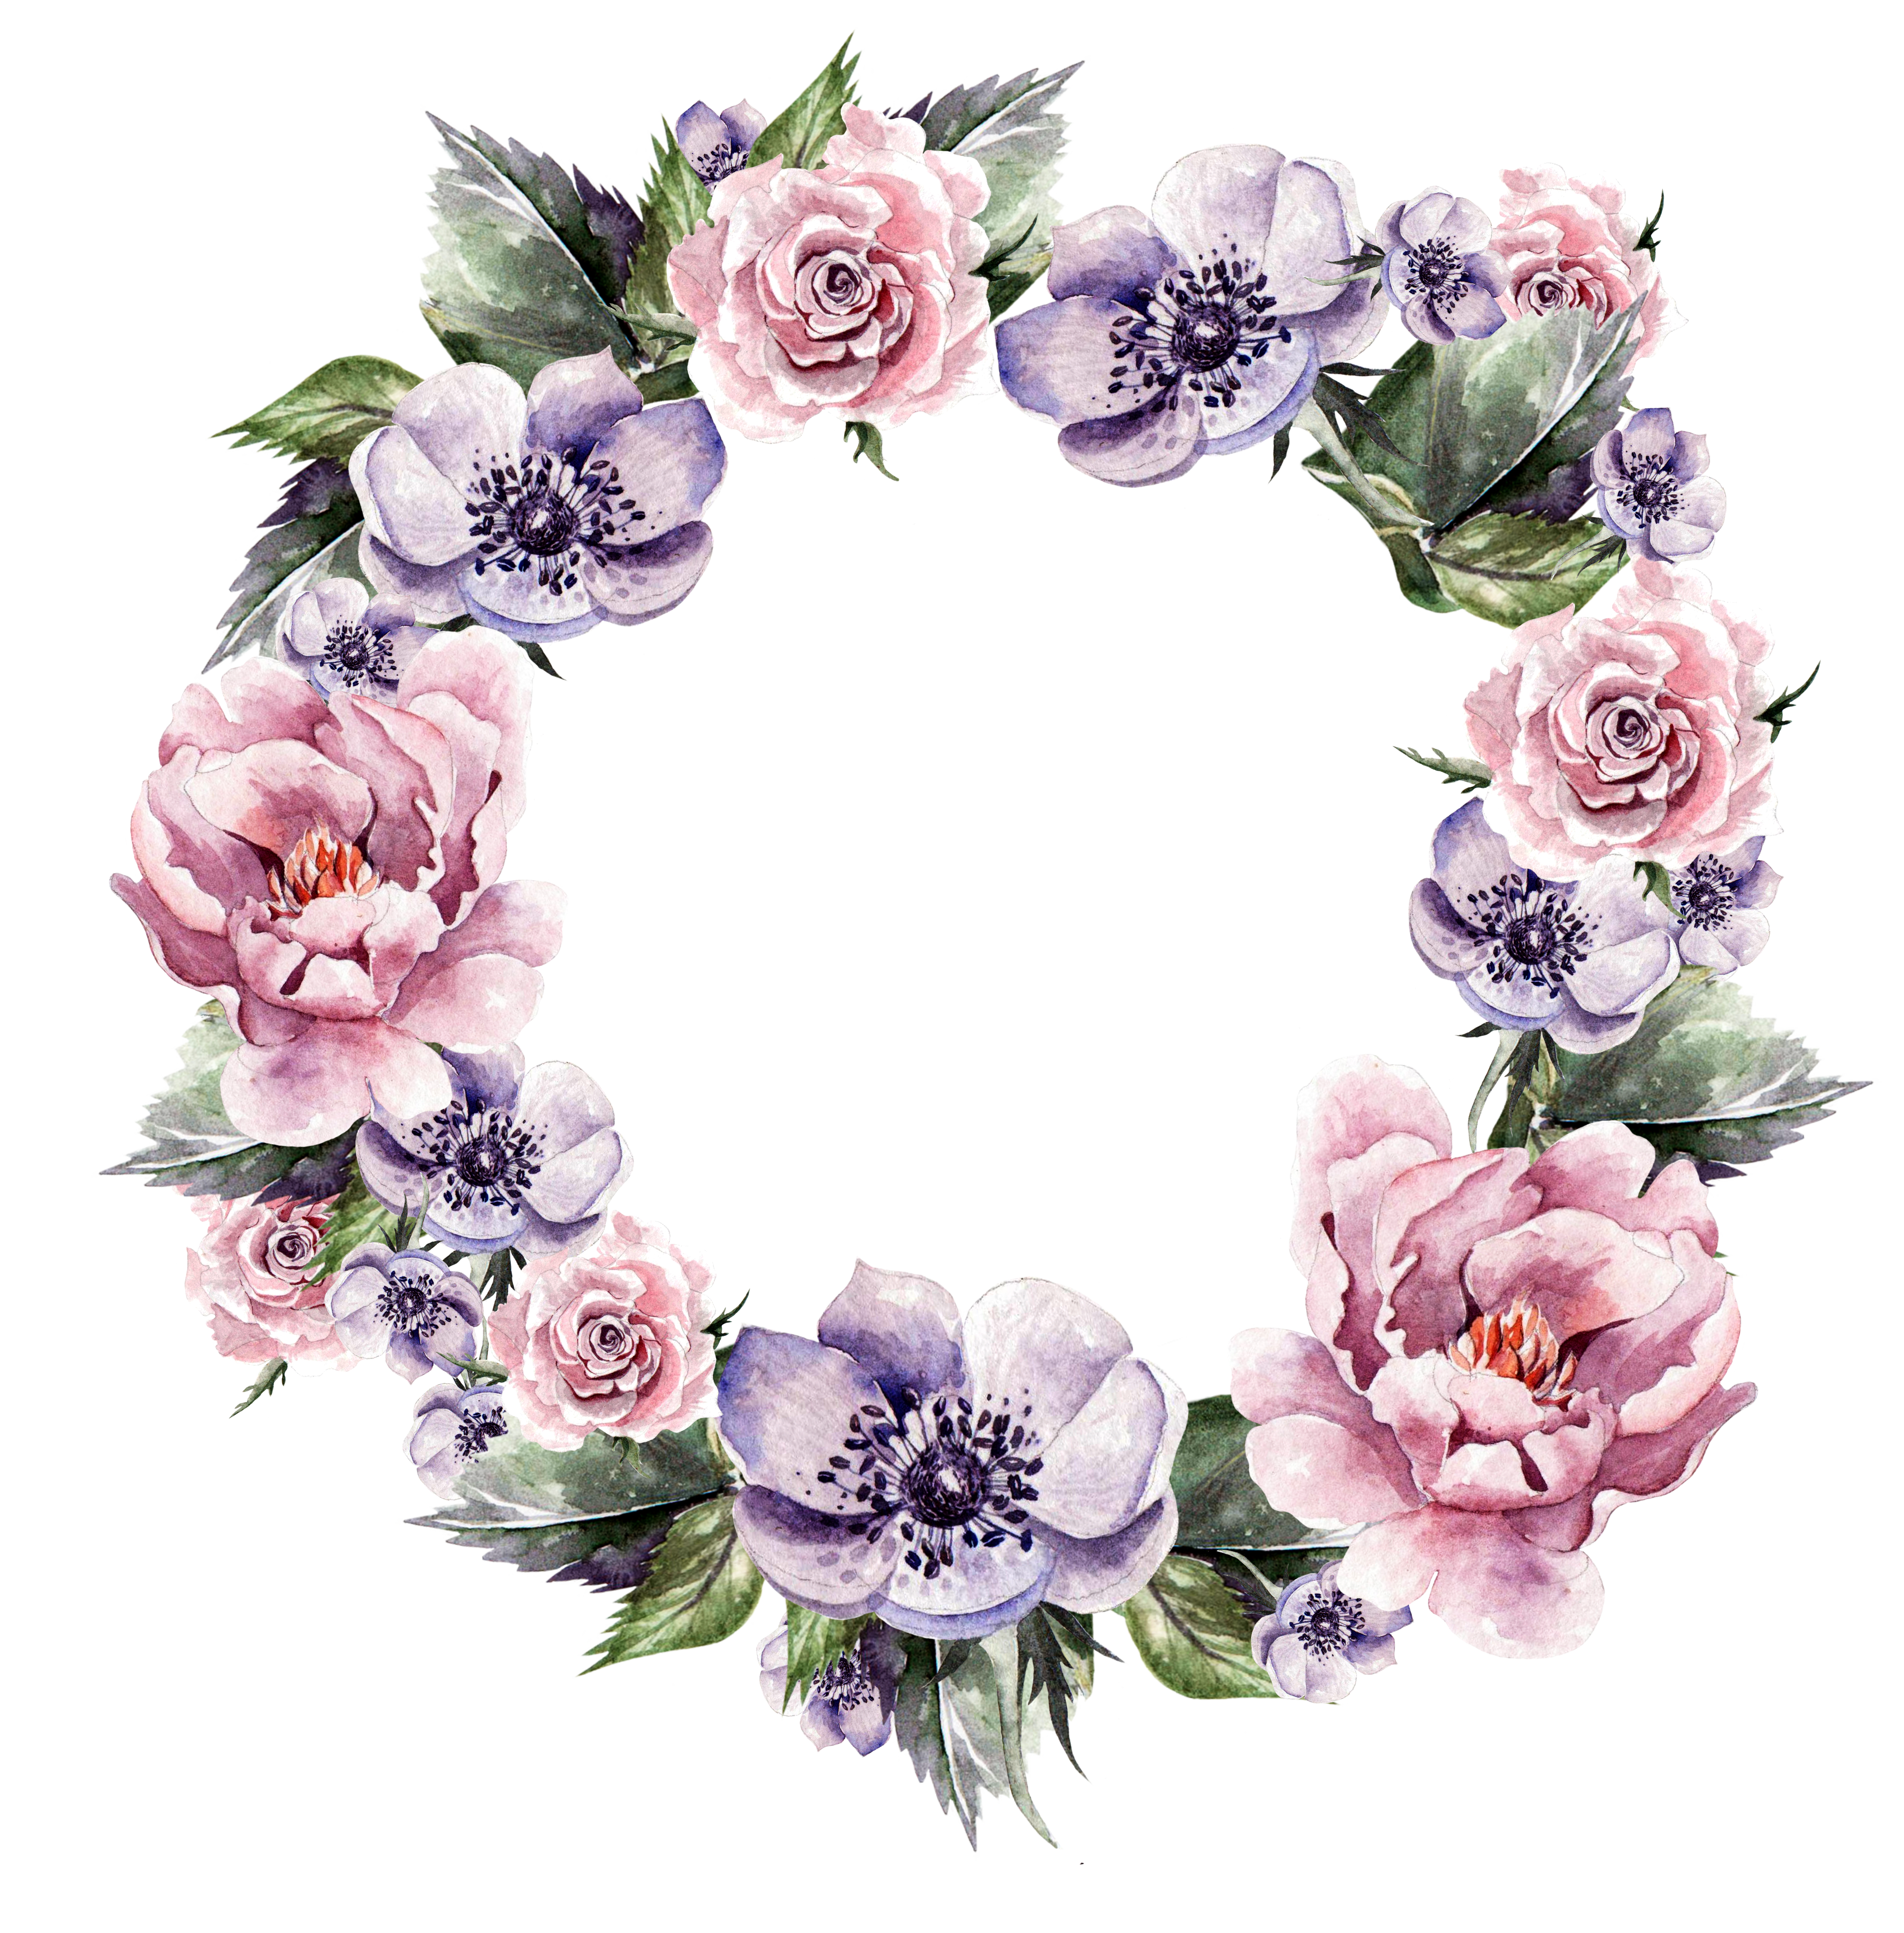 Floral garland png. Flower wreath wedding invitation